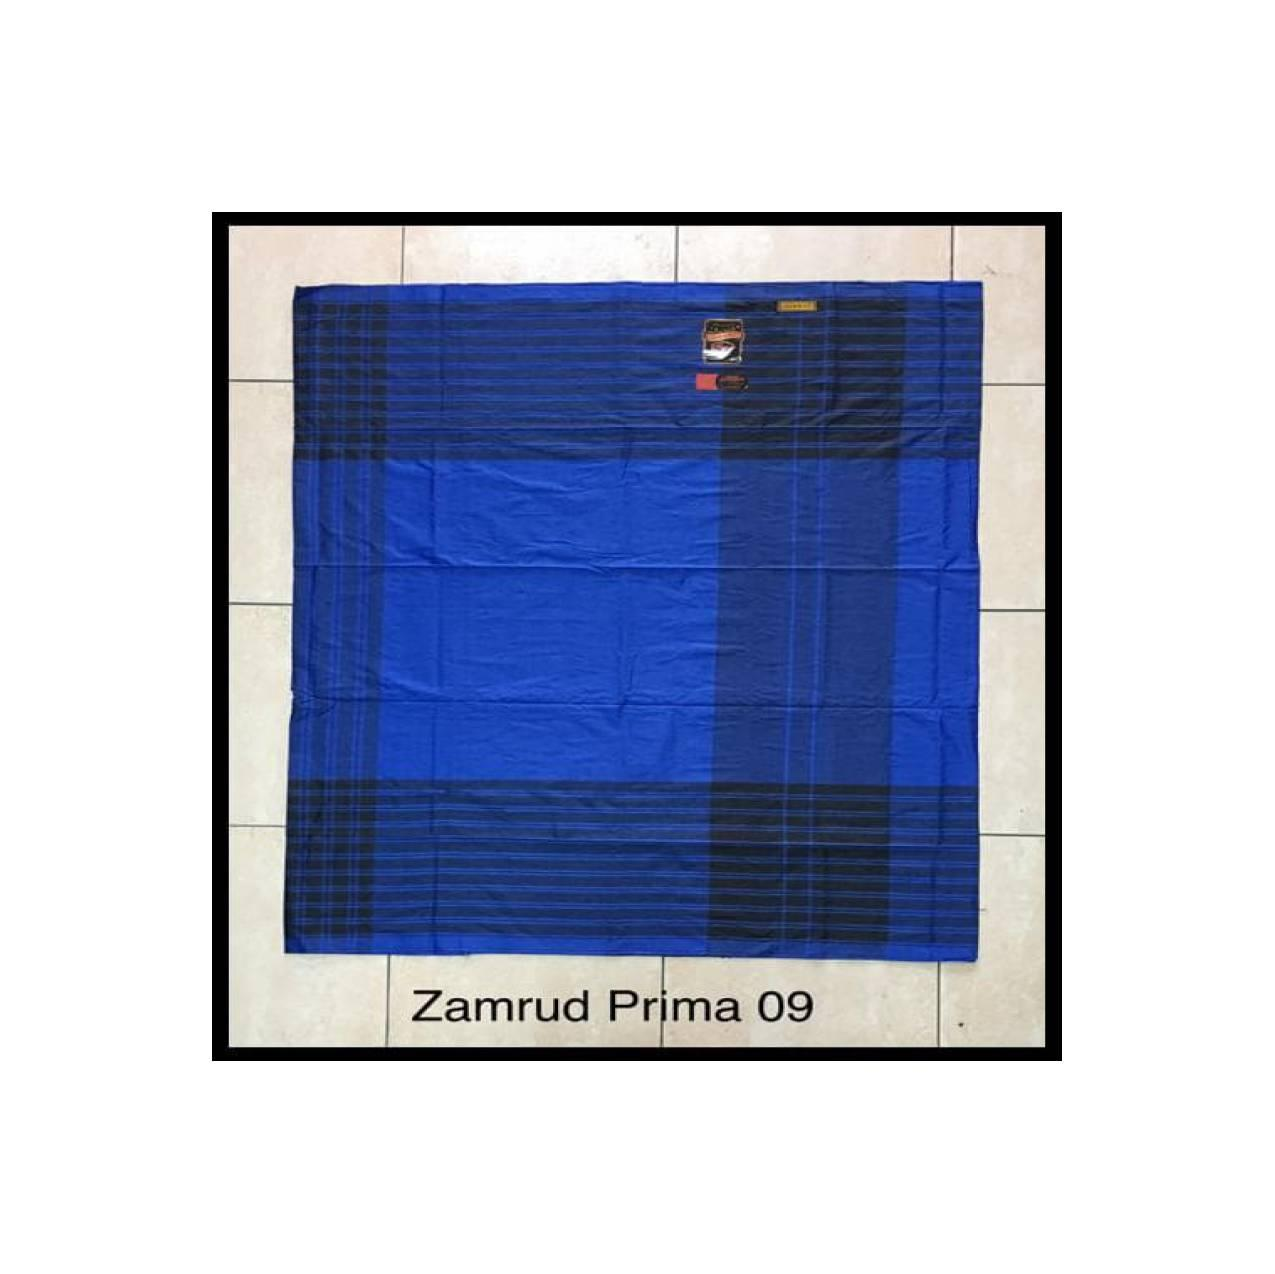 Hot Sale Sarung Zamrud Prima